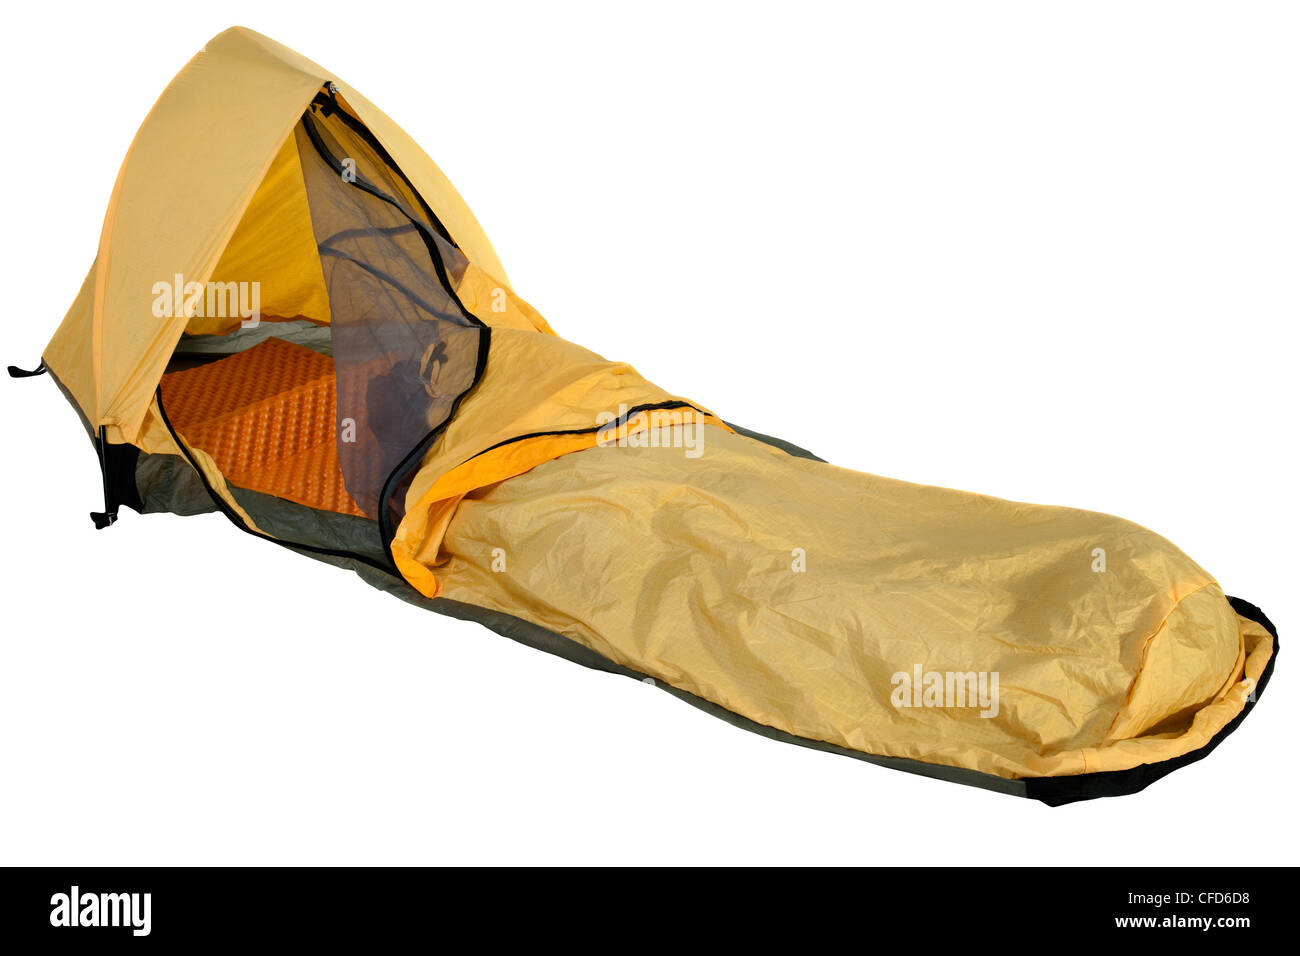 yellow bivy sack for minimalist solo expedition camping